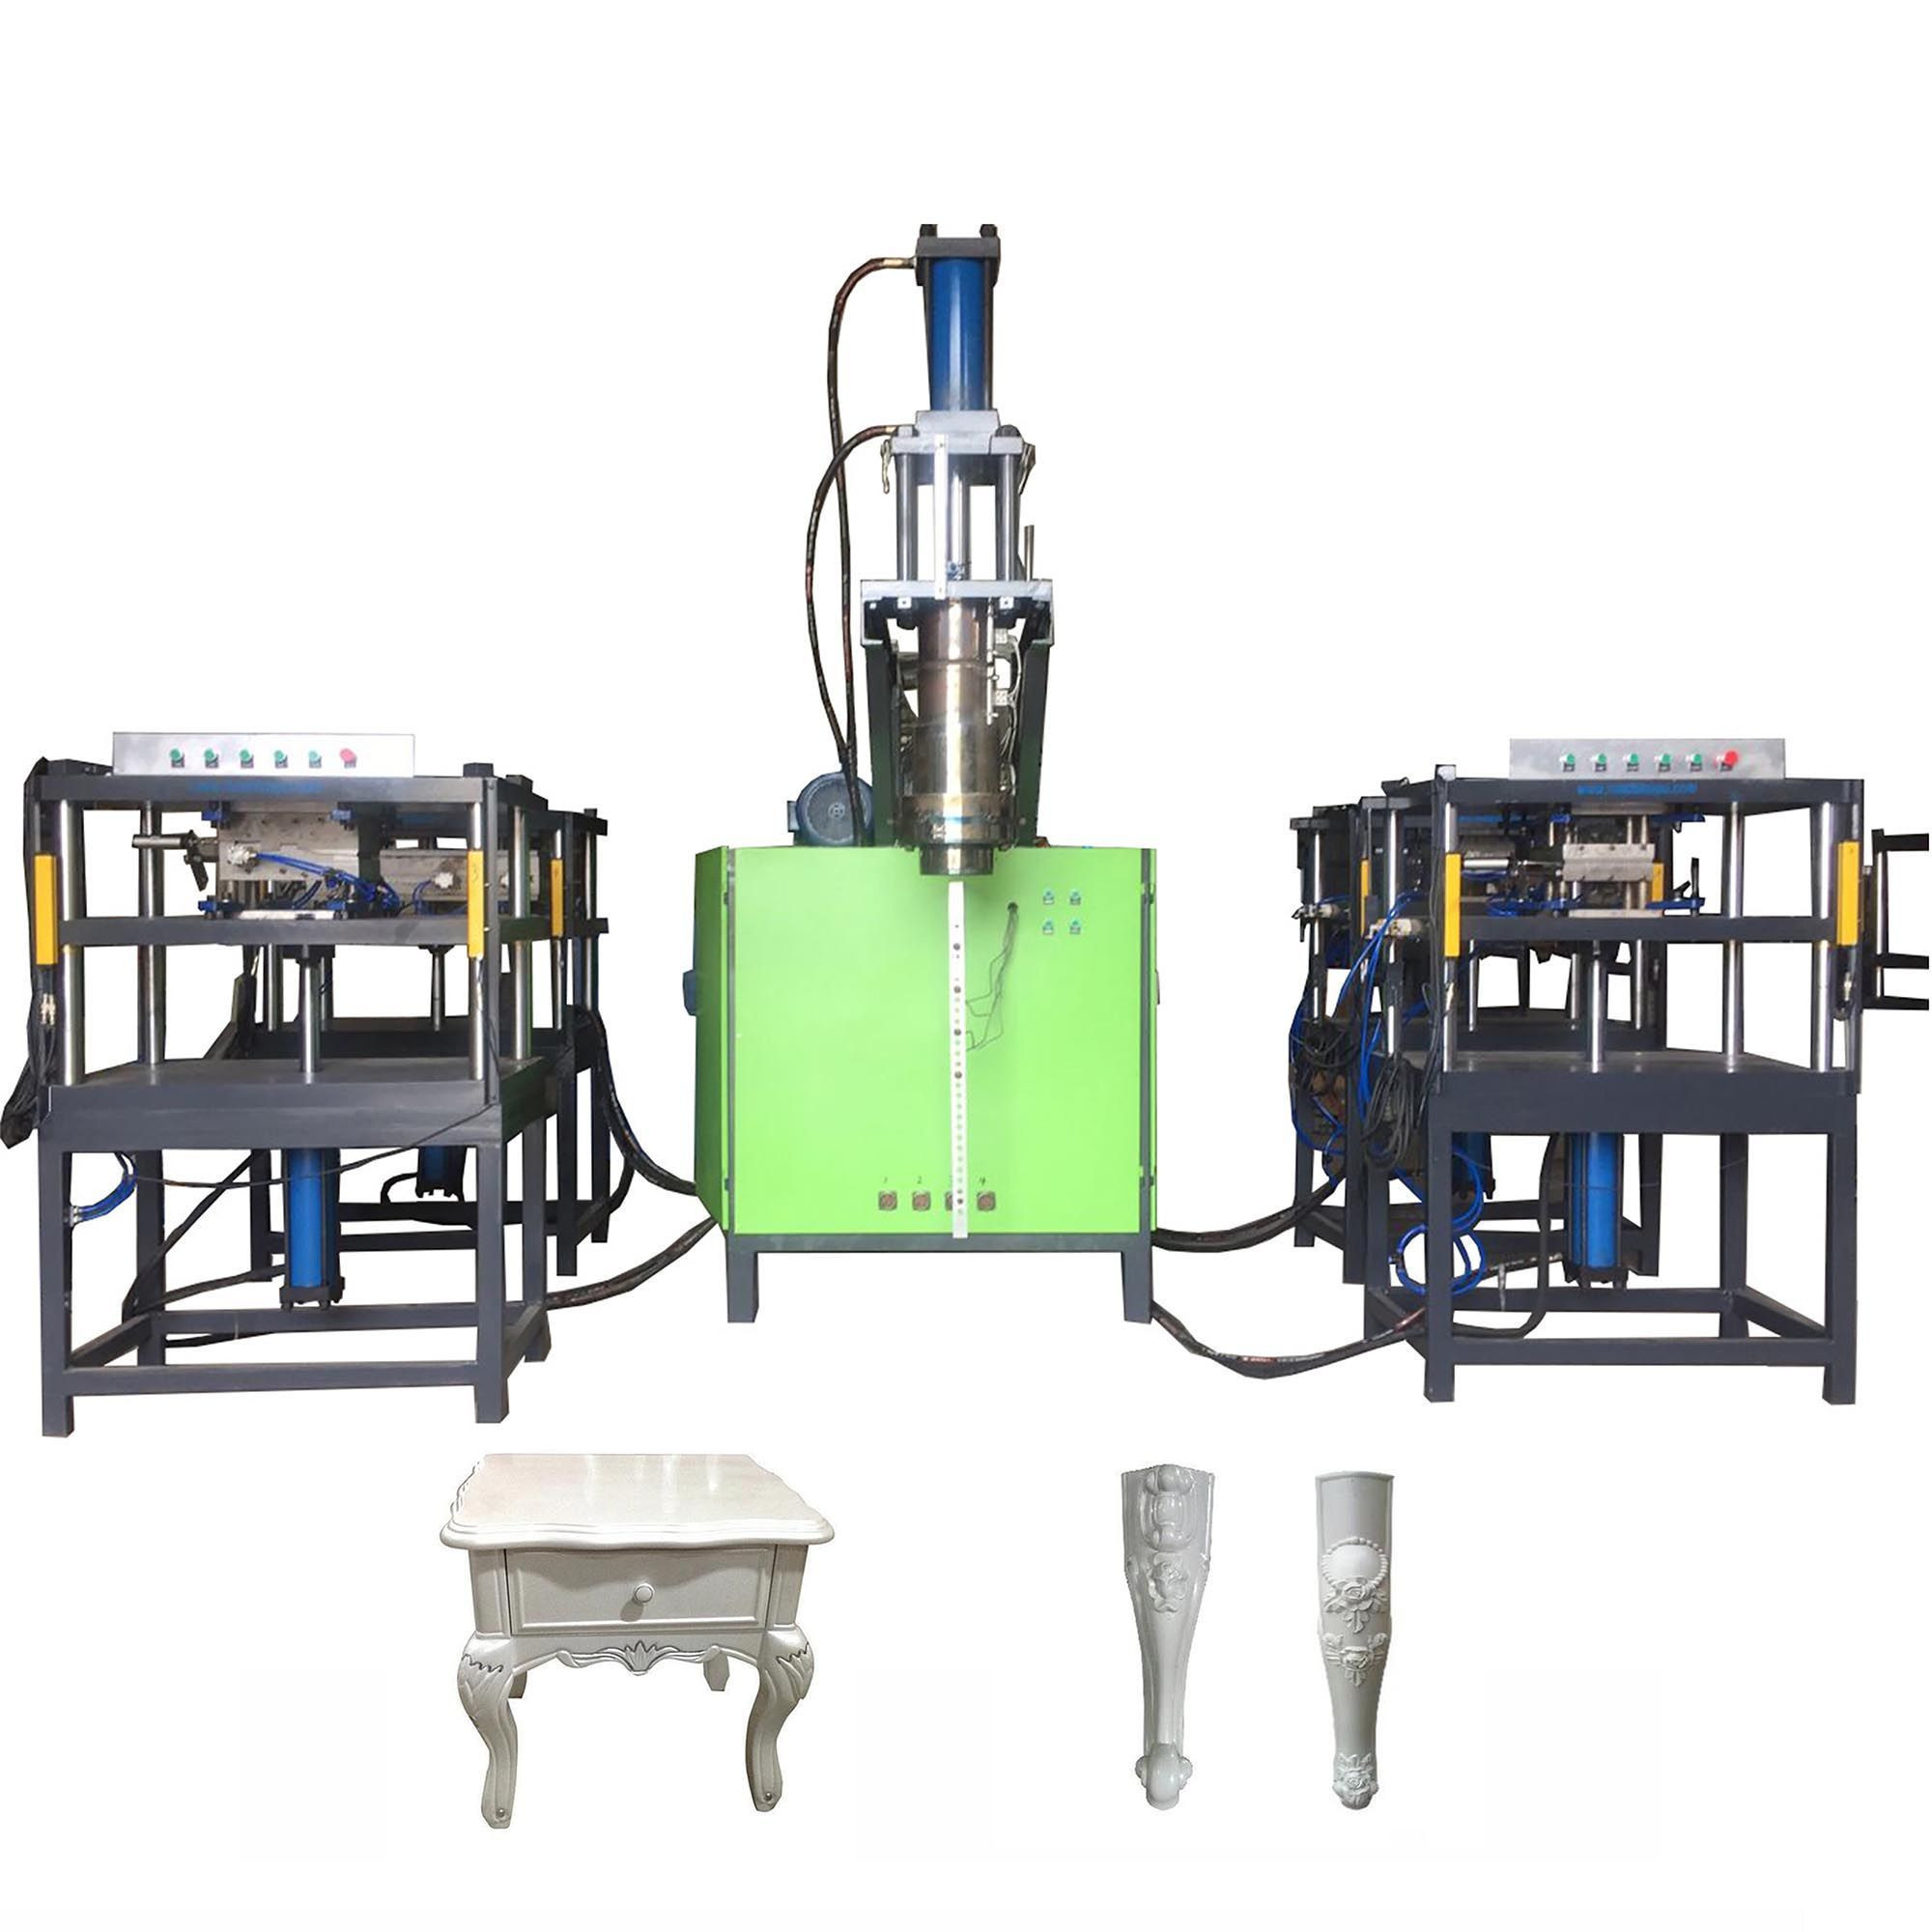 ABS Injection Blow Molding Machine For Plastic Furniture Legs Making